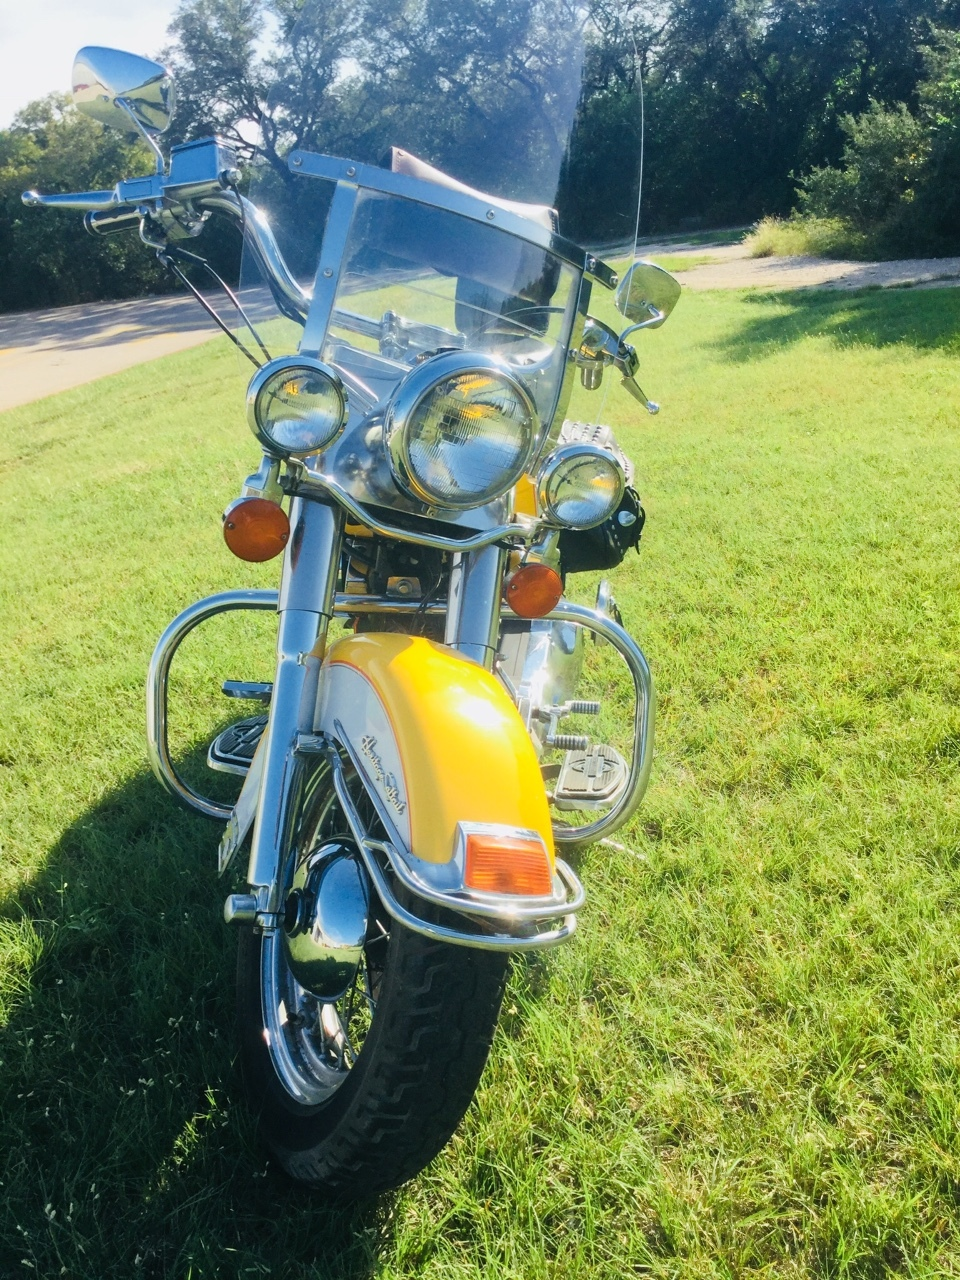 Austin 1300 Motorcycles Near Me For Sale Cycle Trader A 555 Timer Based Motorcycle Alarm